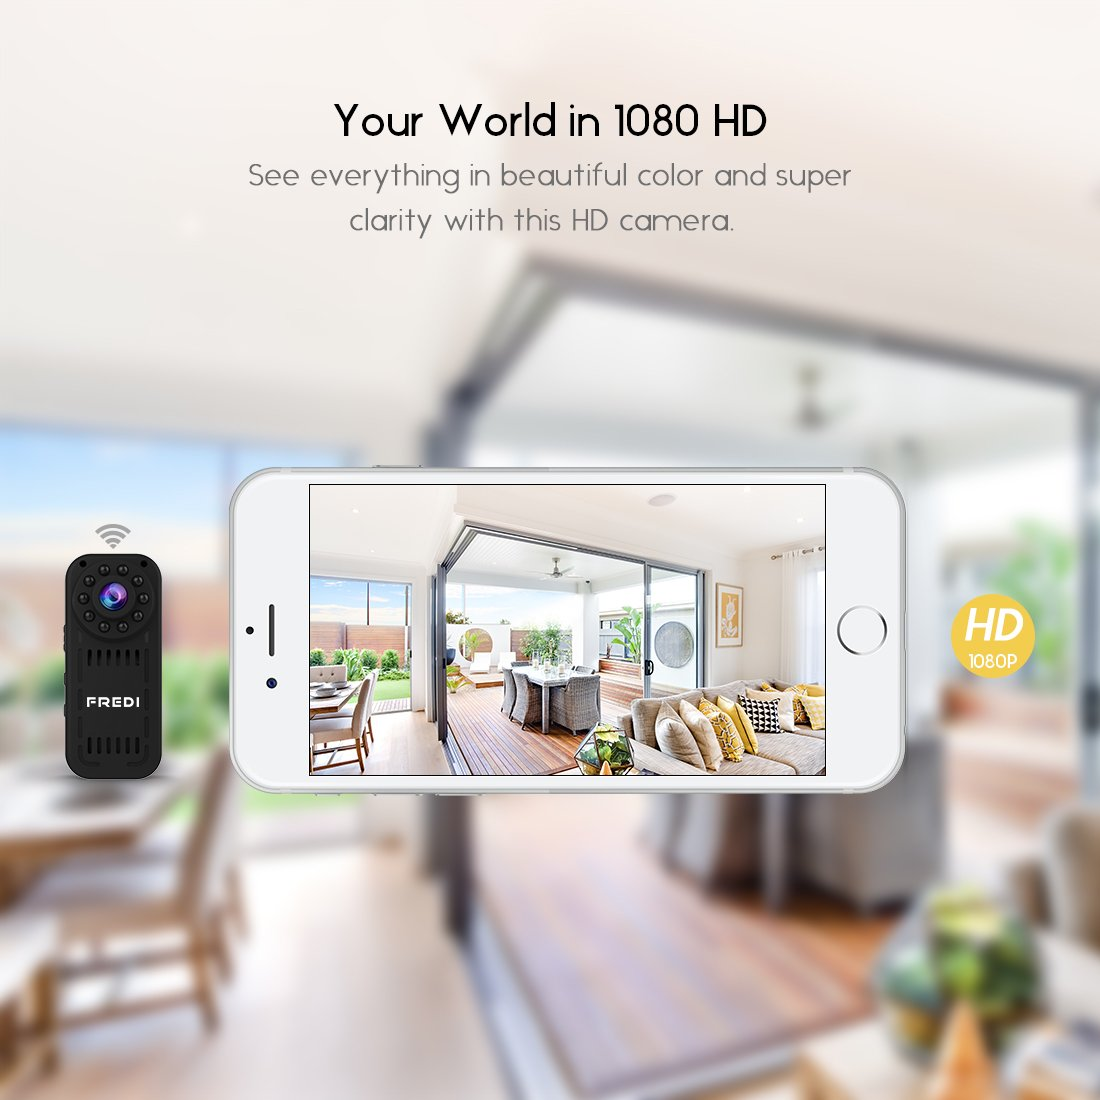 FREDI hidden camera 1080p HD mini wifi camera spy camera for iPhone/Android Phone/ iPad Remote View with Motion Detection(support 128G SD card)